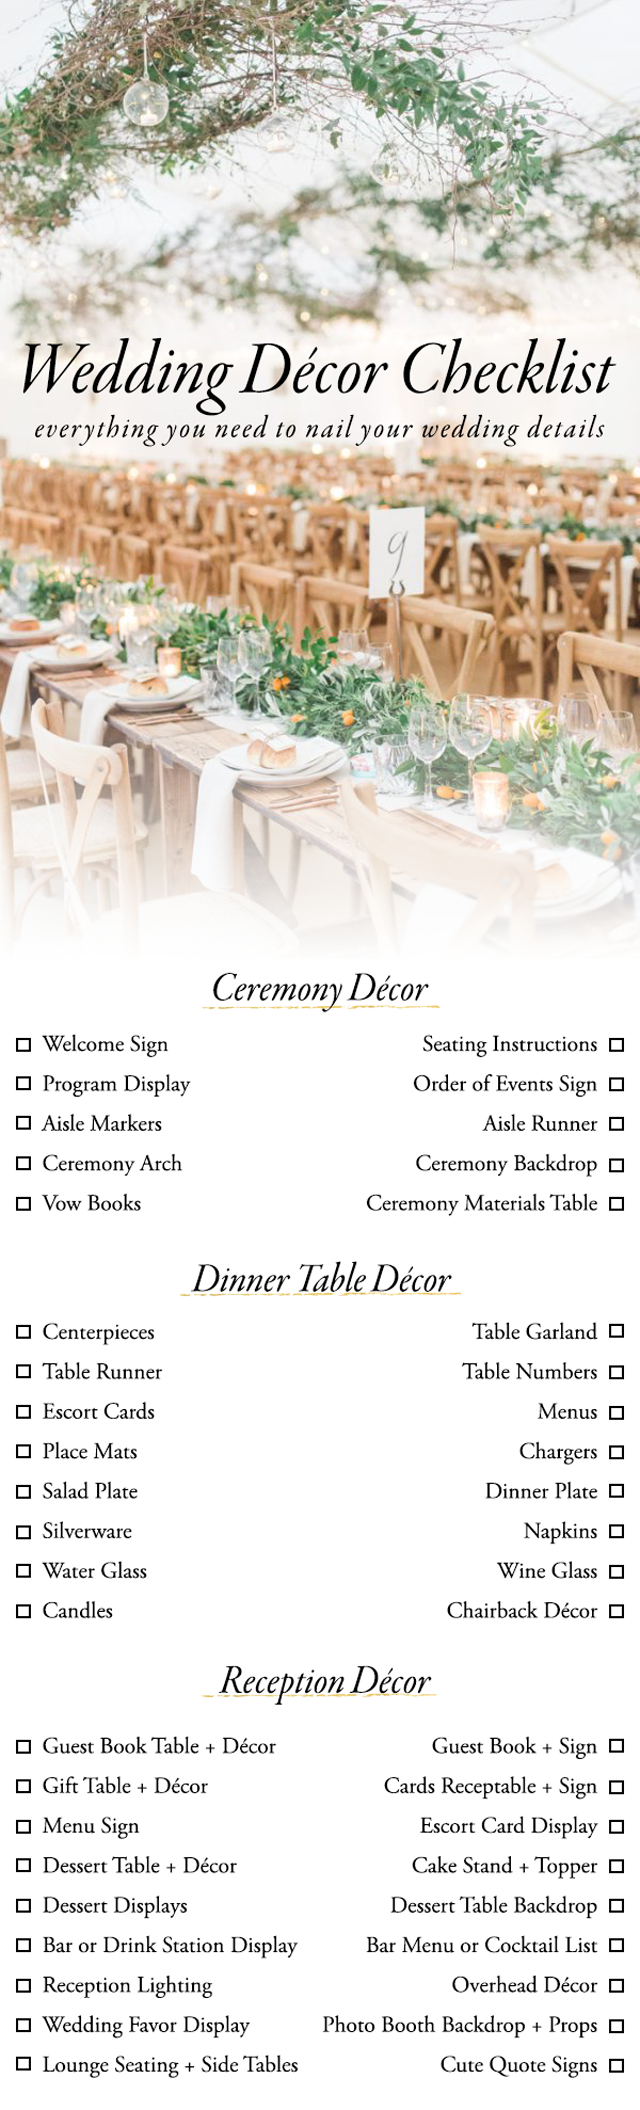 10 printable wedding checklists for the organized bride sheknows